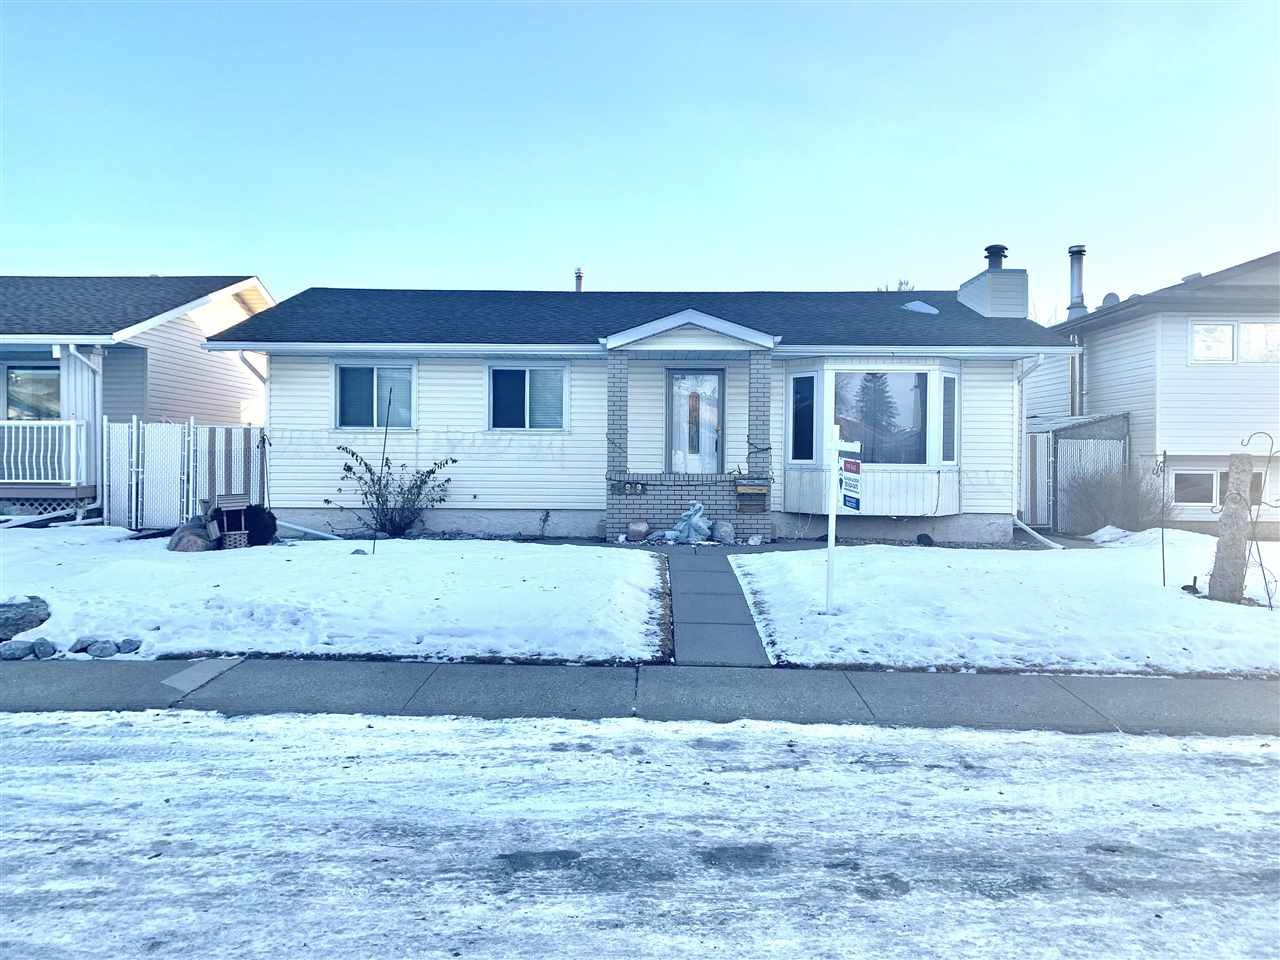 Main Photo: 12919 25 Street in Edmonton: Zone 35 House for sale : MLS®# E4223989